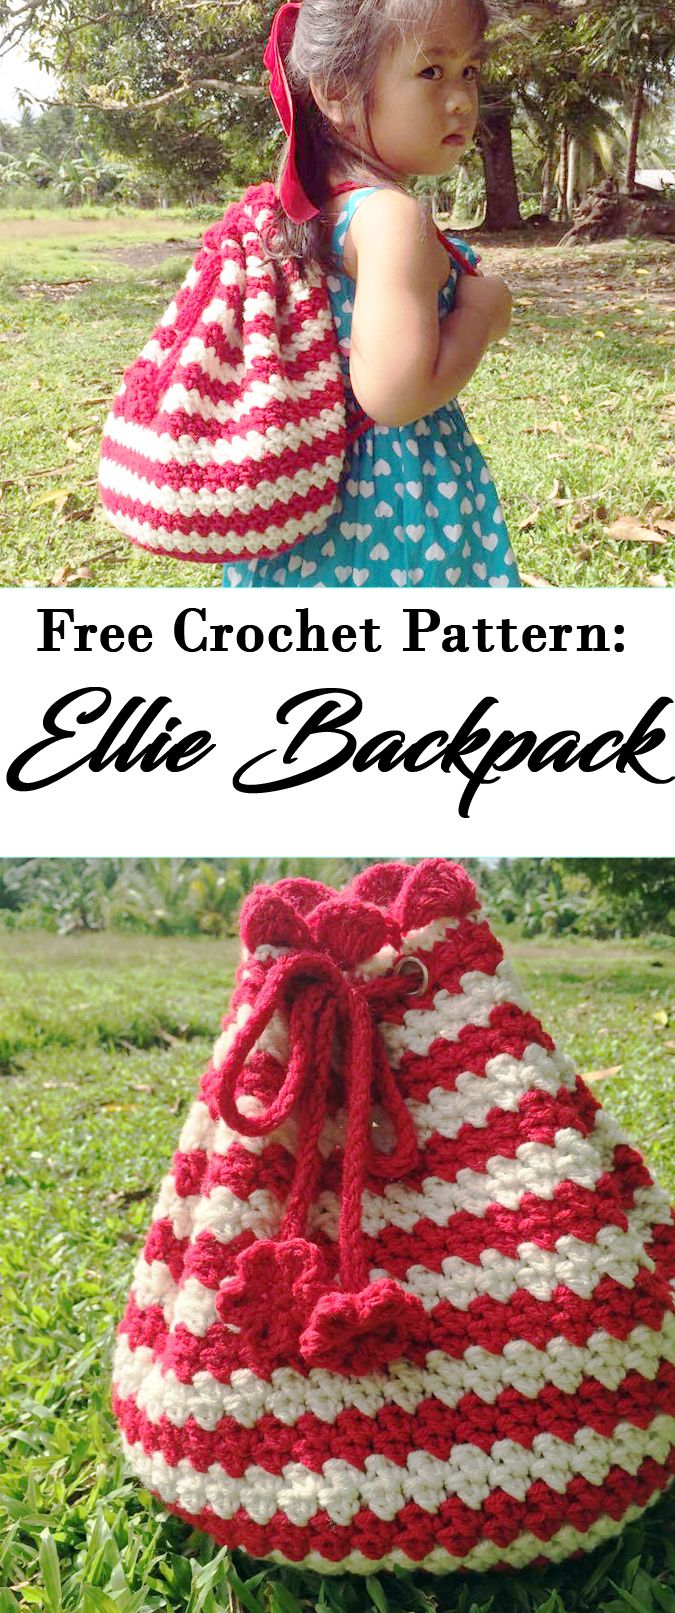 THE ELLIE BACKPACK It's actually so easy to make. The stitches are not that complicated. I hope you will try and love this pattern. If you have any questions or inquiries about this pattern feel free to contact me.